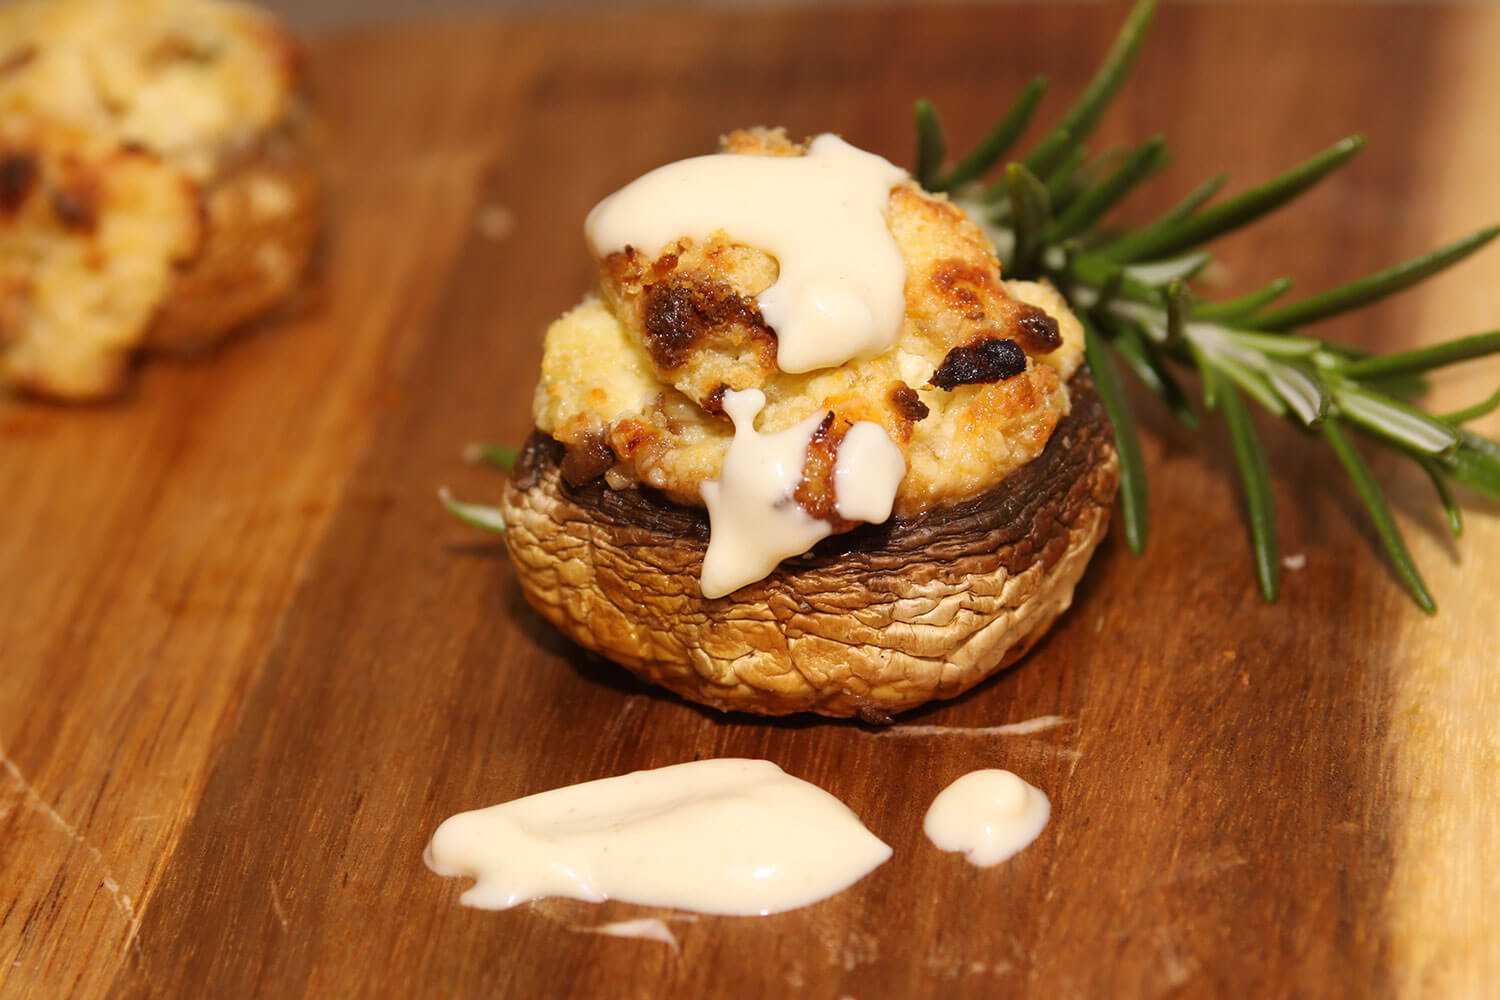 Stuffed Mushrooms with Neufchatel Cheese